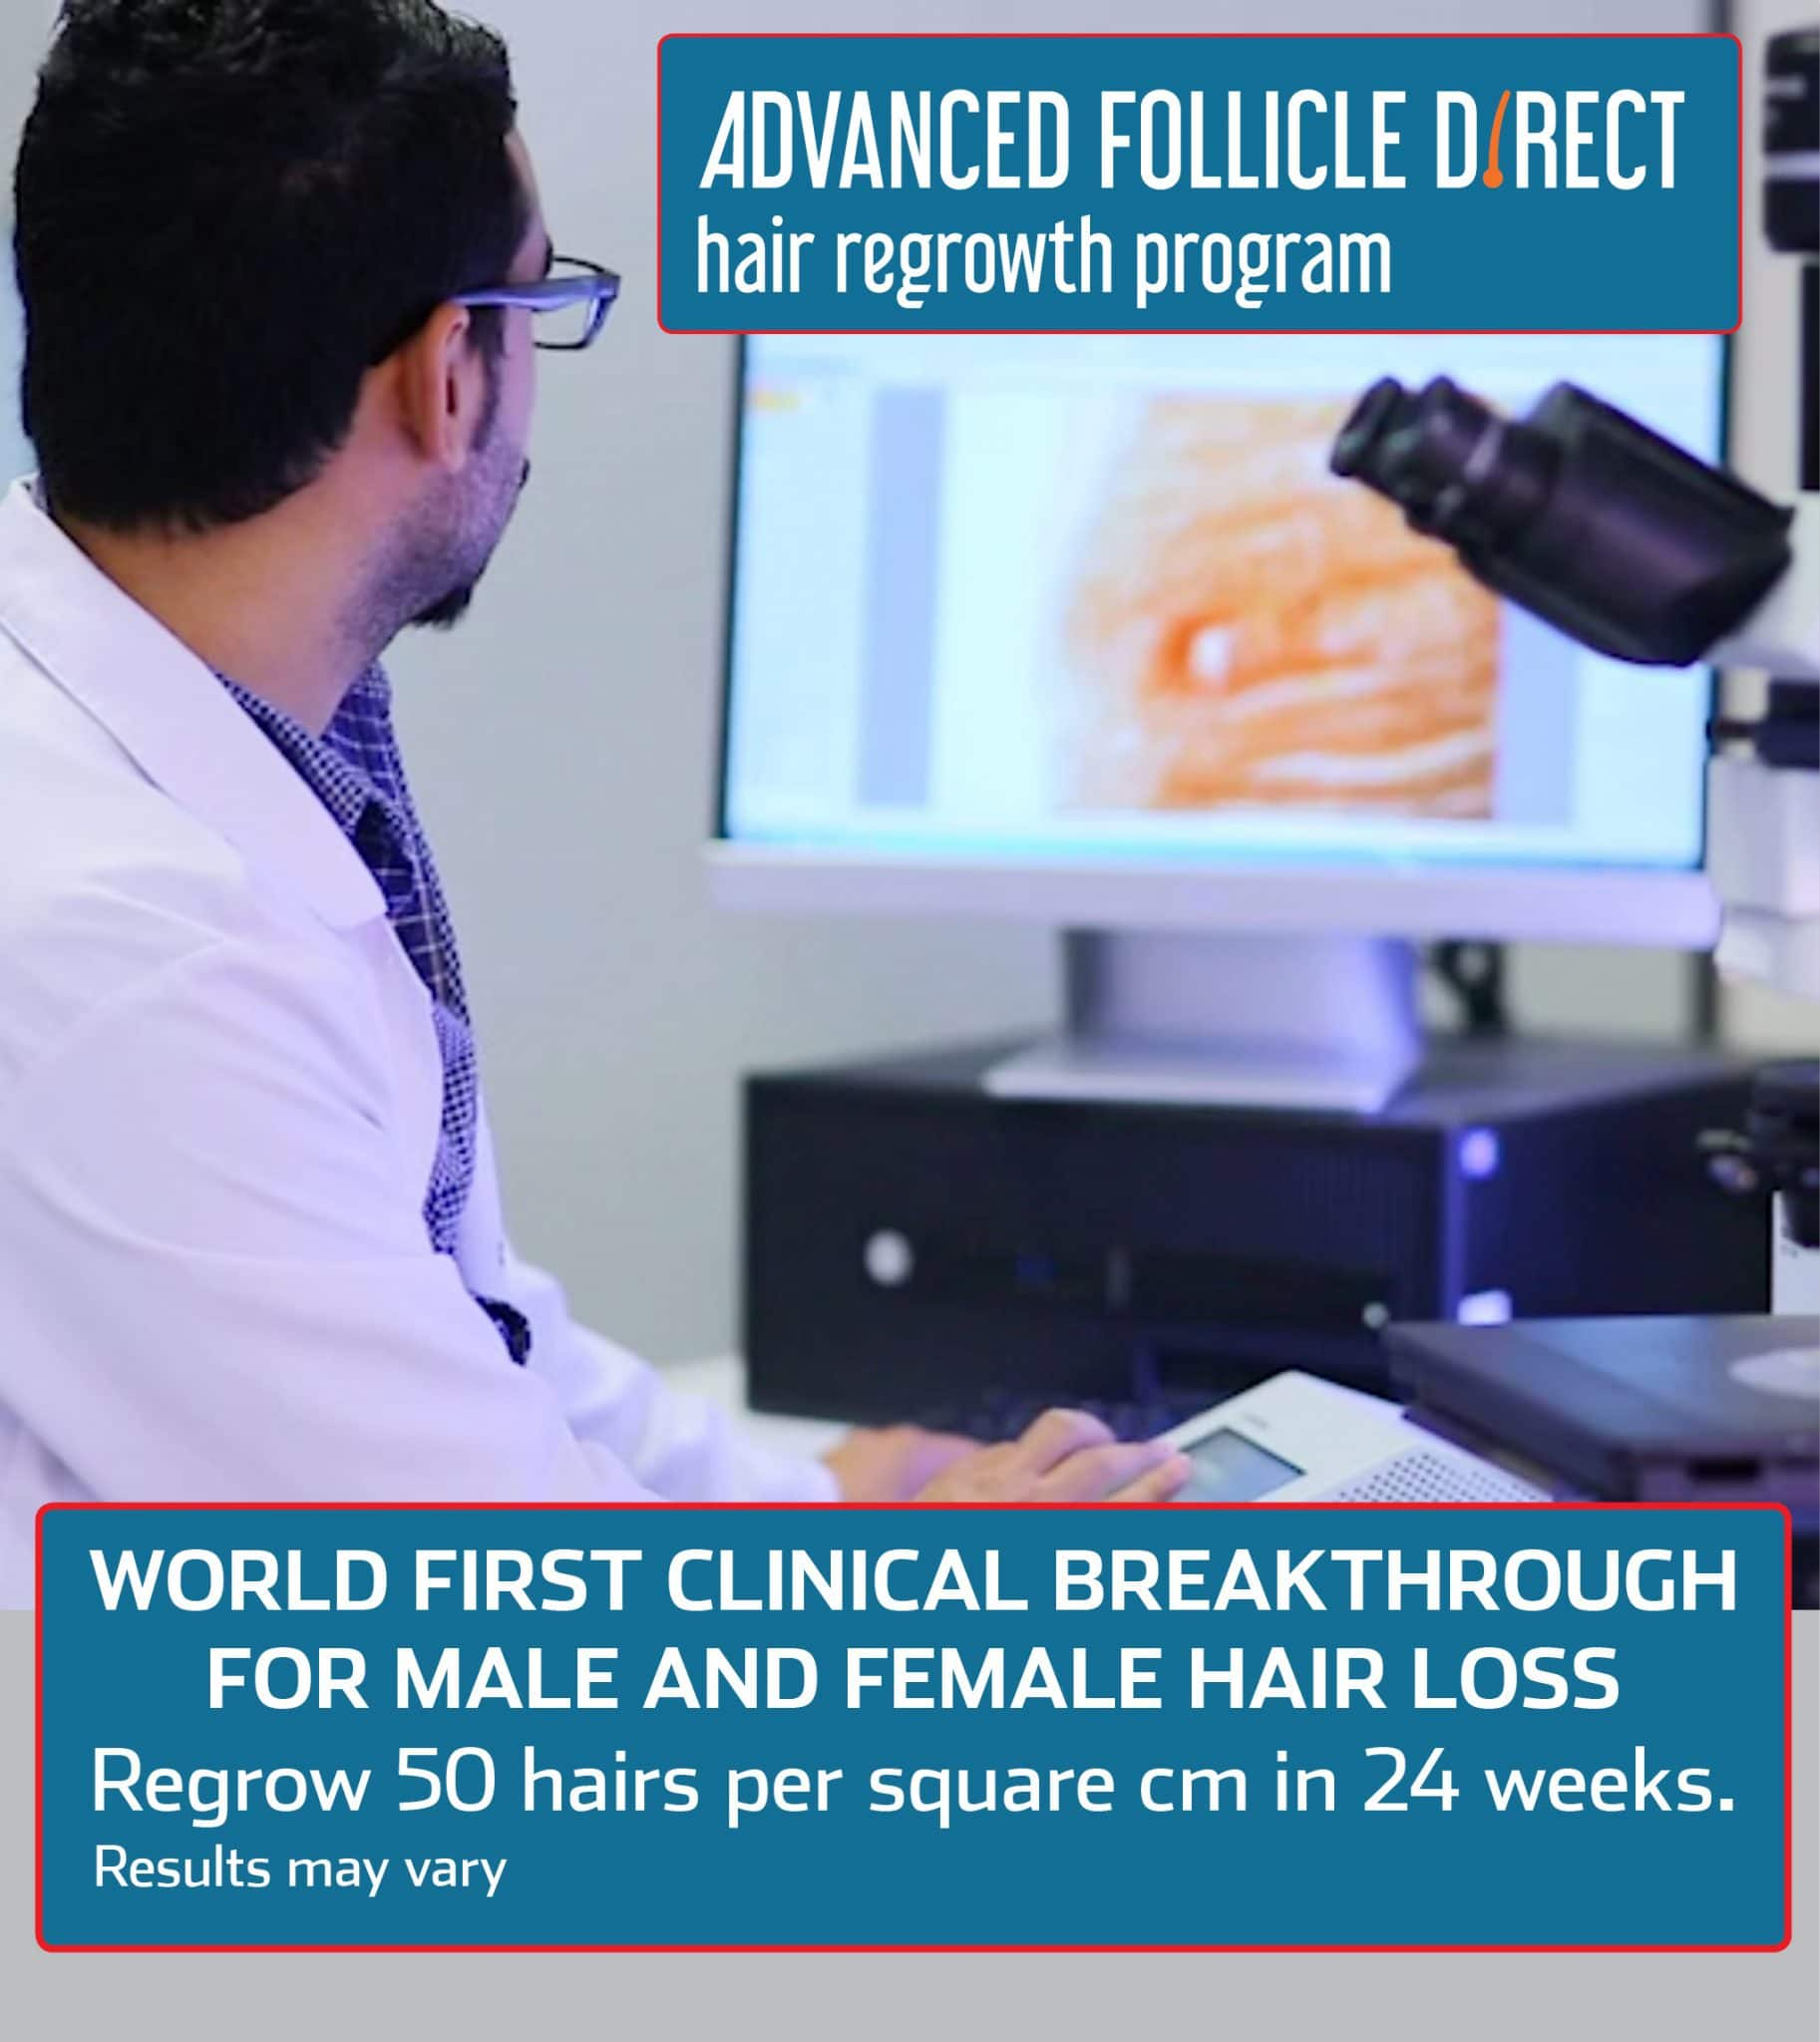 Advanced Follicle Direct Hair Regrowth Program